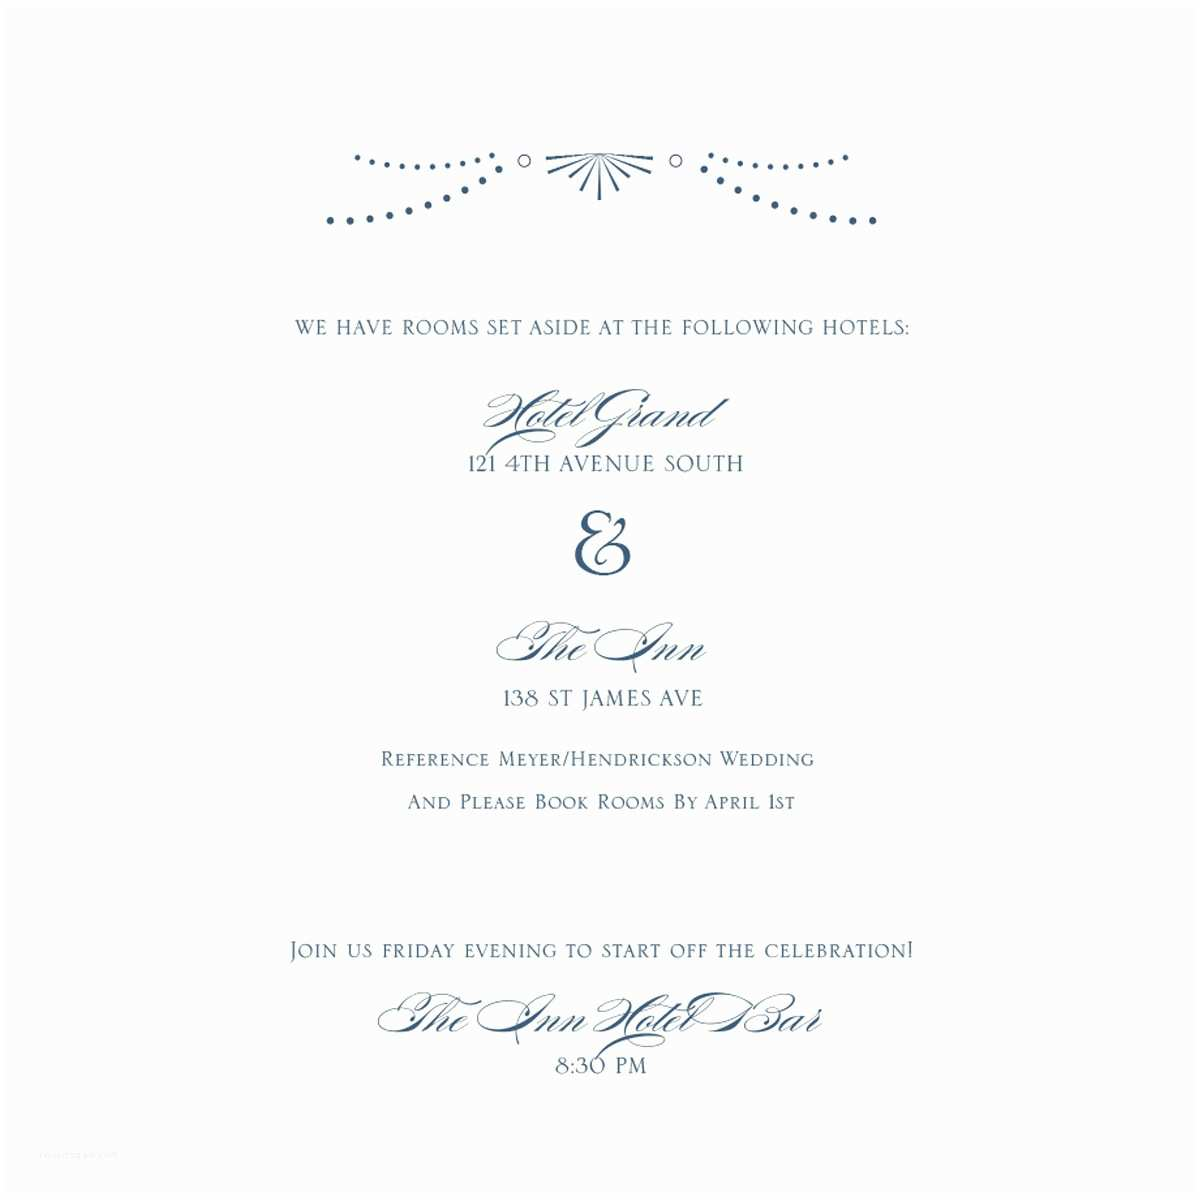 Happily Ever after Wedding Invitations Navy Blue and Ivory Wedding Invitation Happily Ever